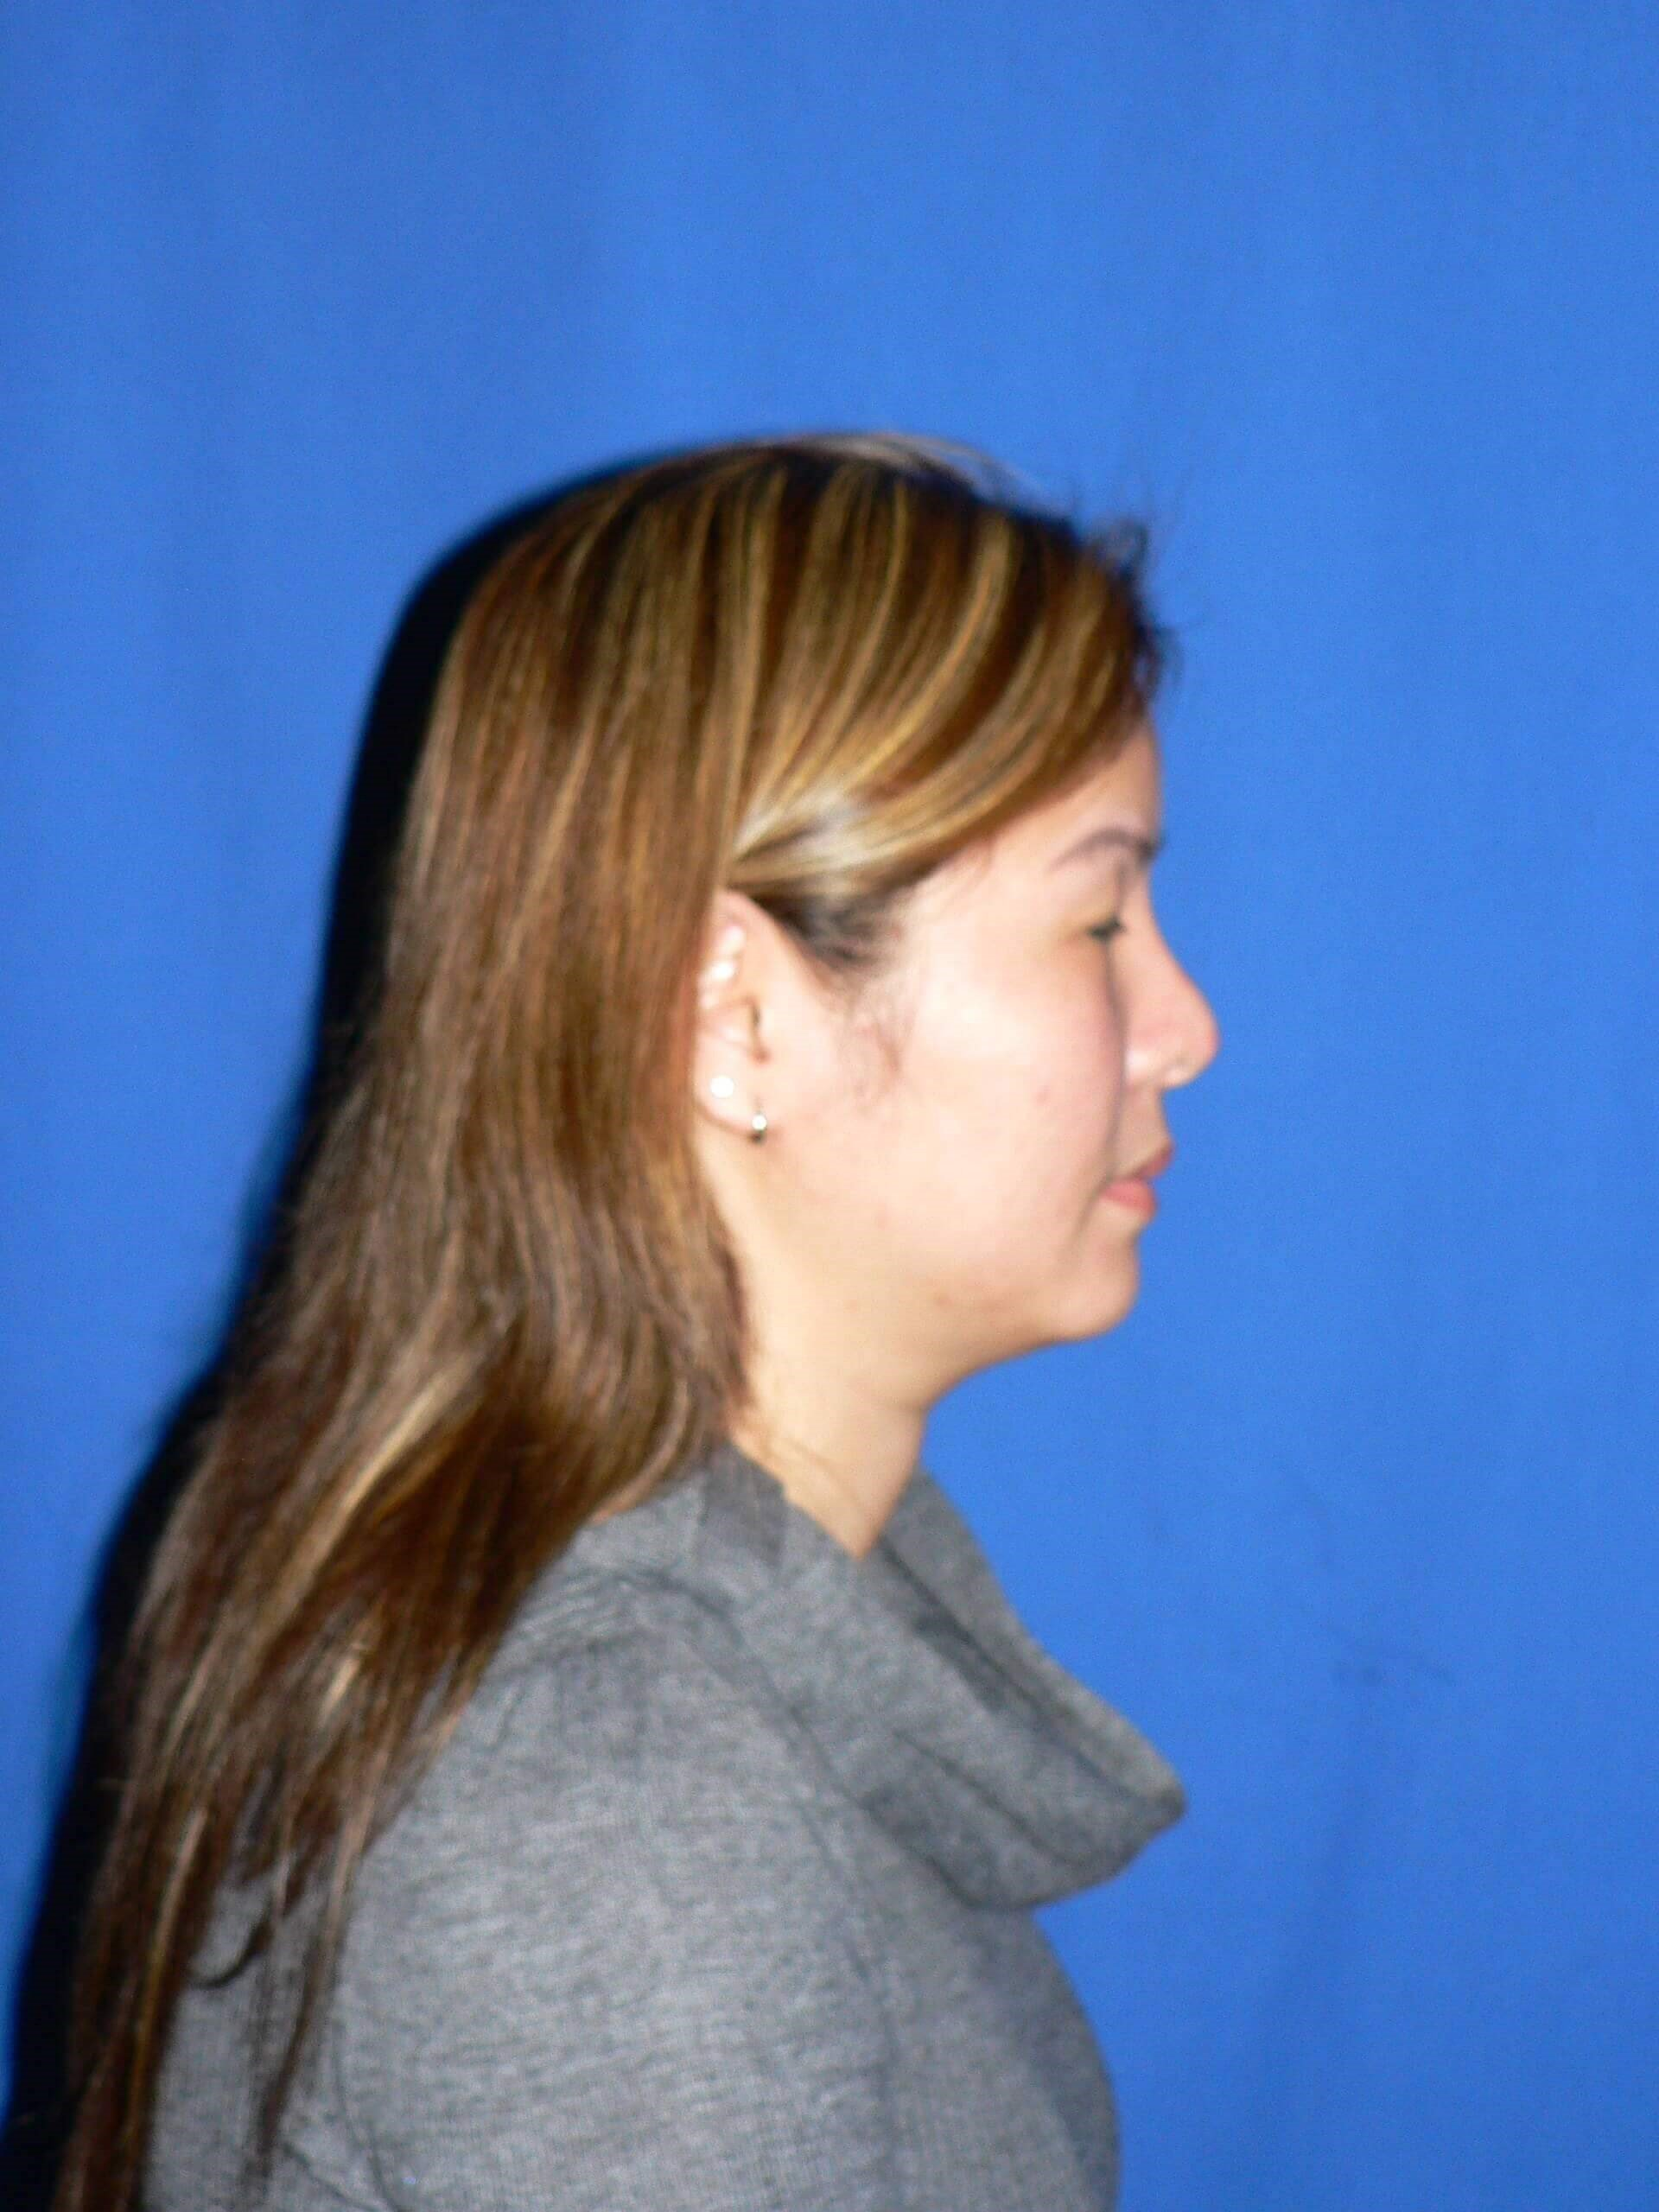 Ethnic Revision Rhinoplasty Before